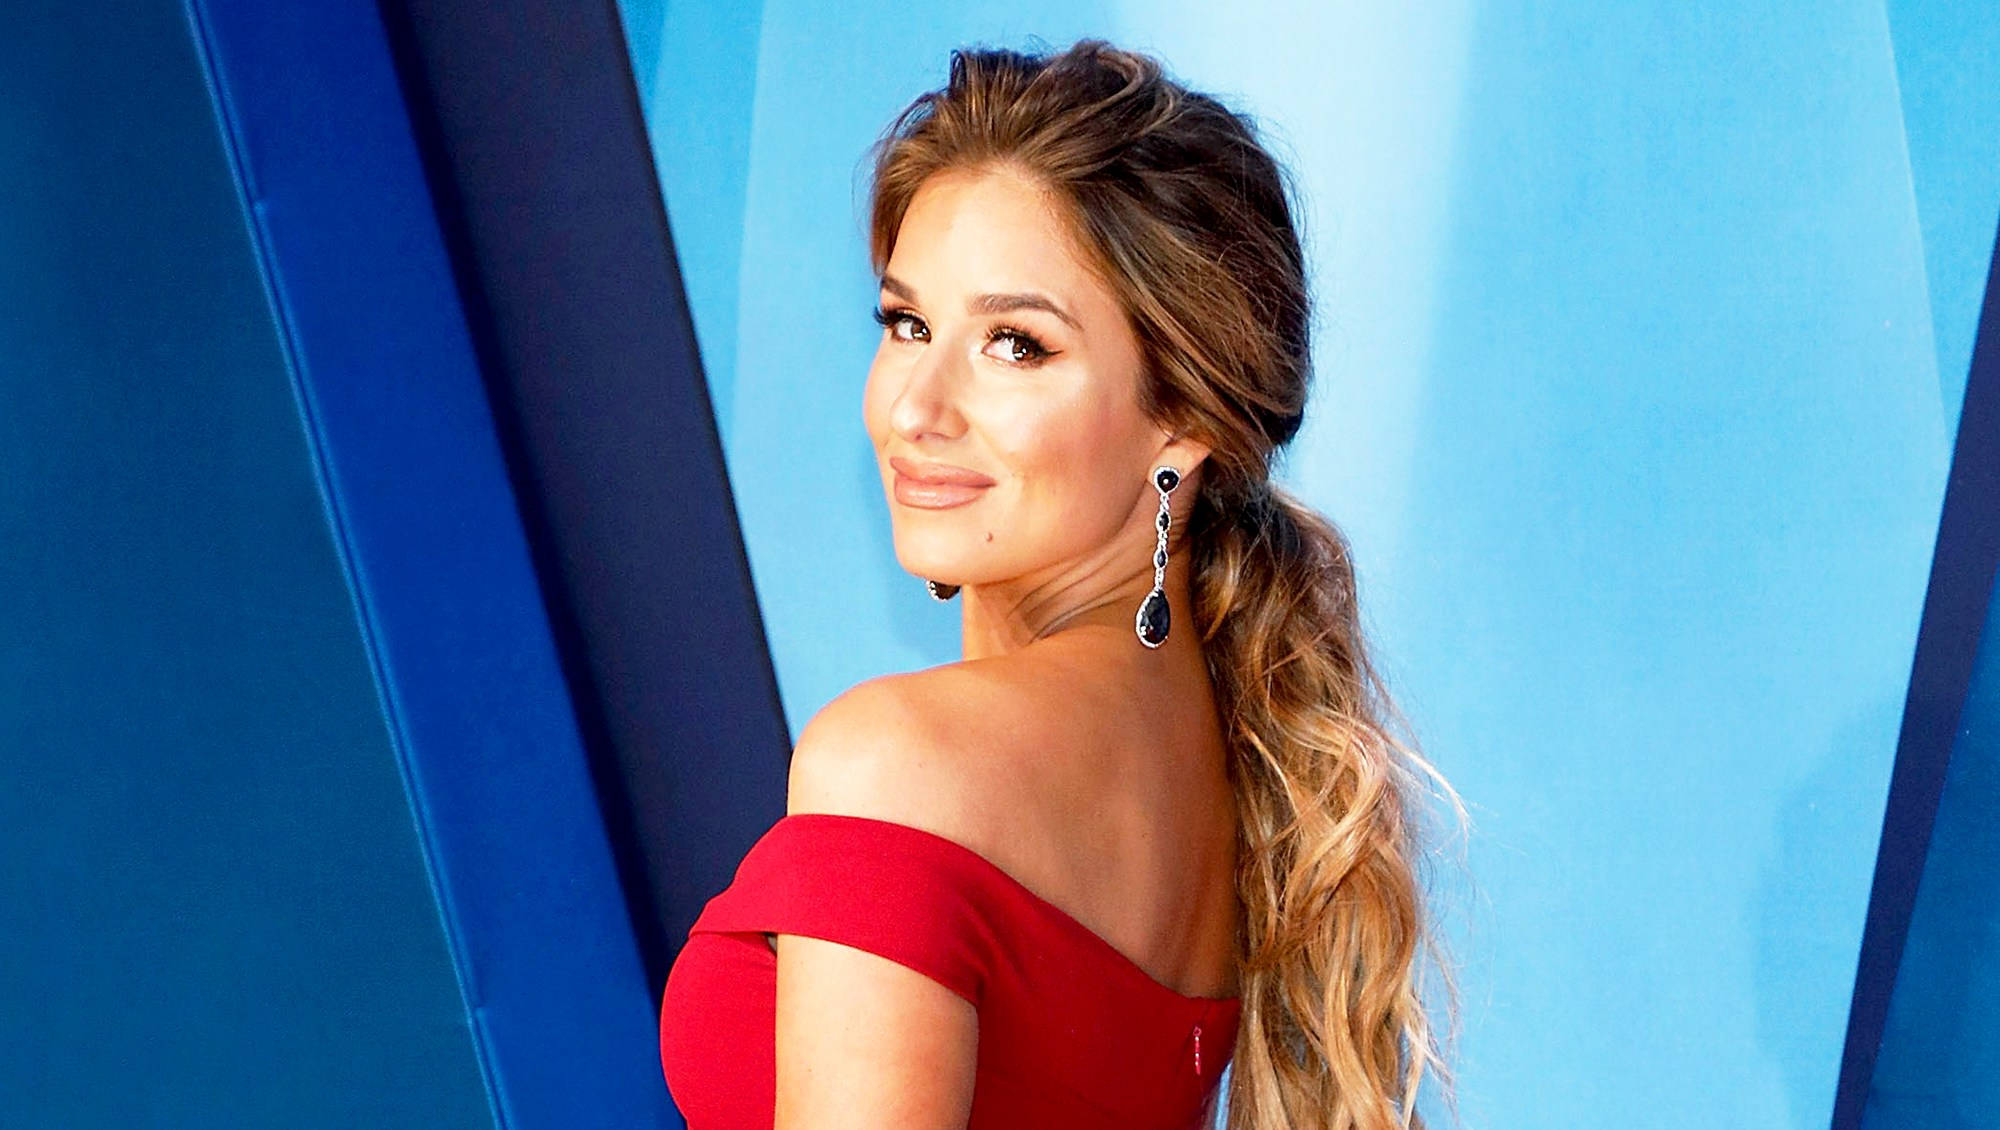 Jessie James Decker attends the 51st annual CMA Awards at the Bridgestone Arena on November 8, 2017 in Nashville, Tennessee.